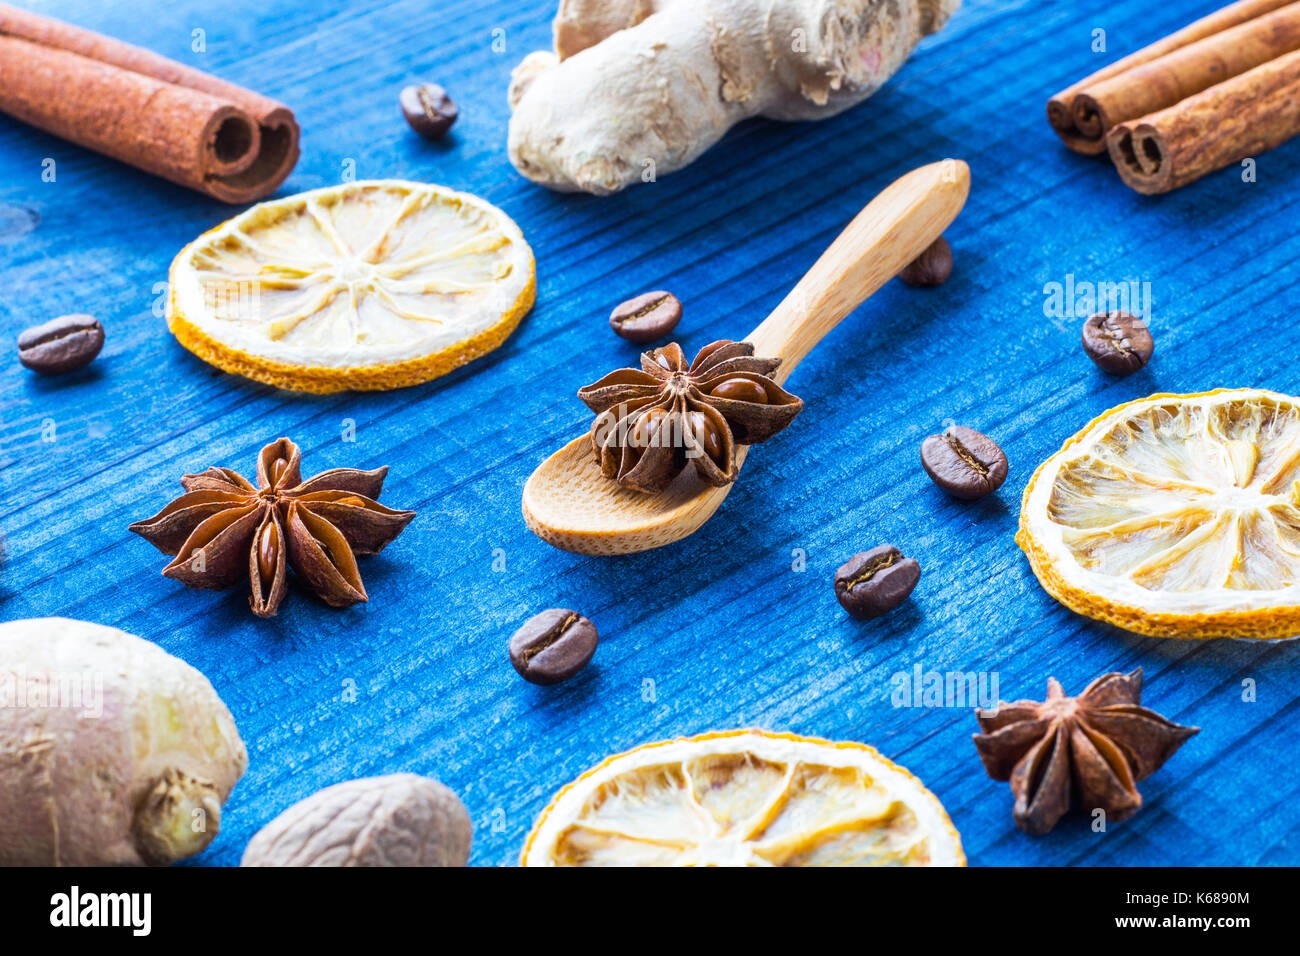 star anise on wooden spoon with spices - Stock Image